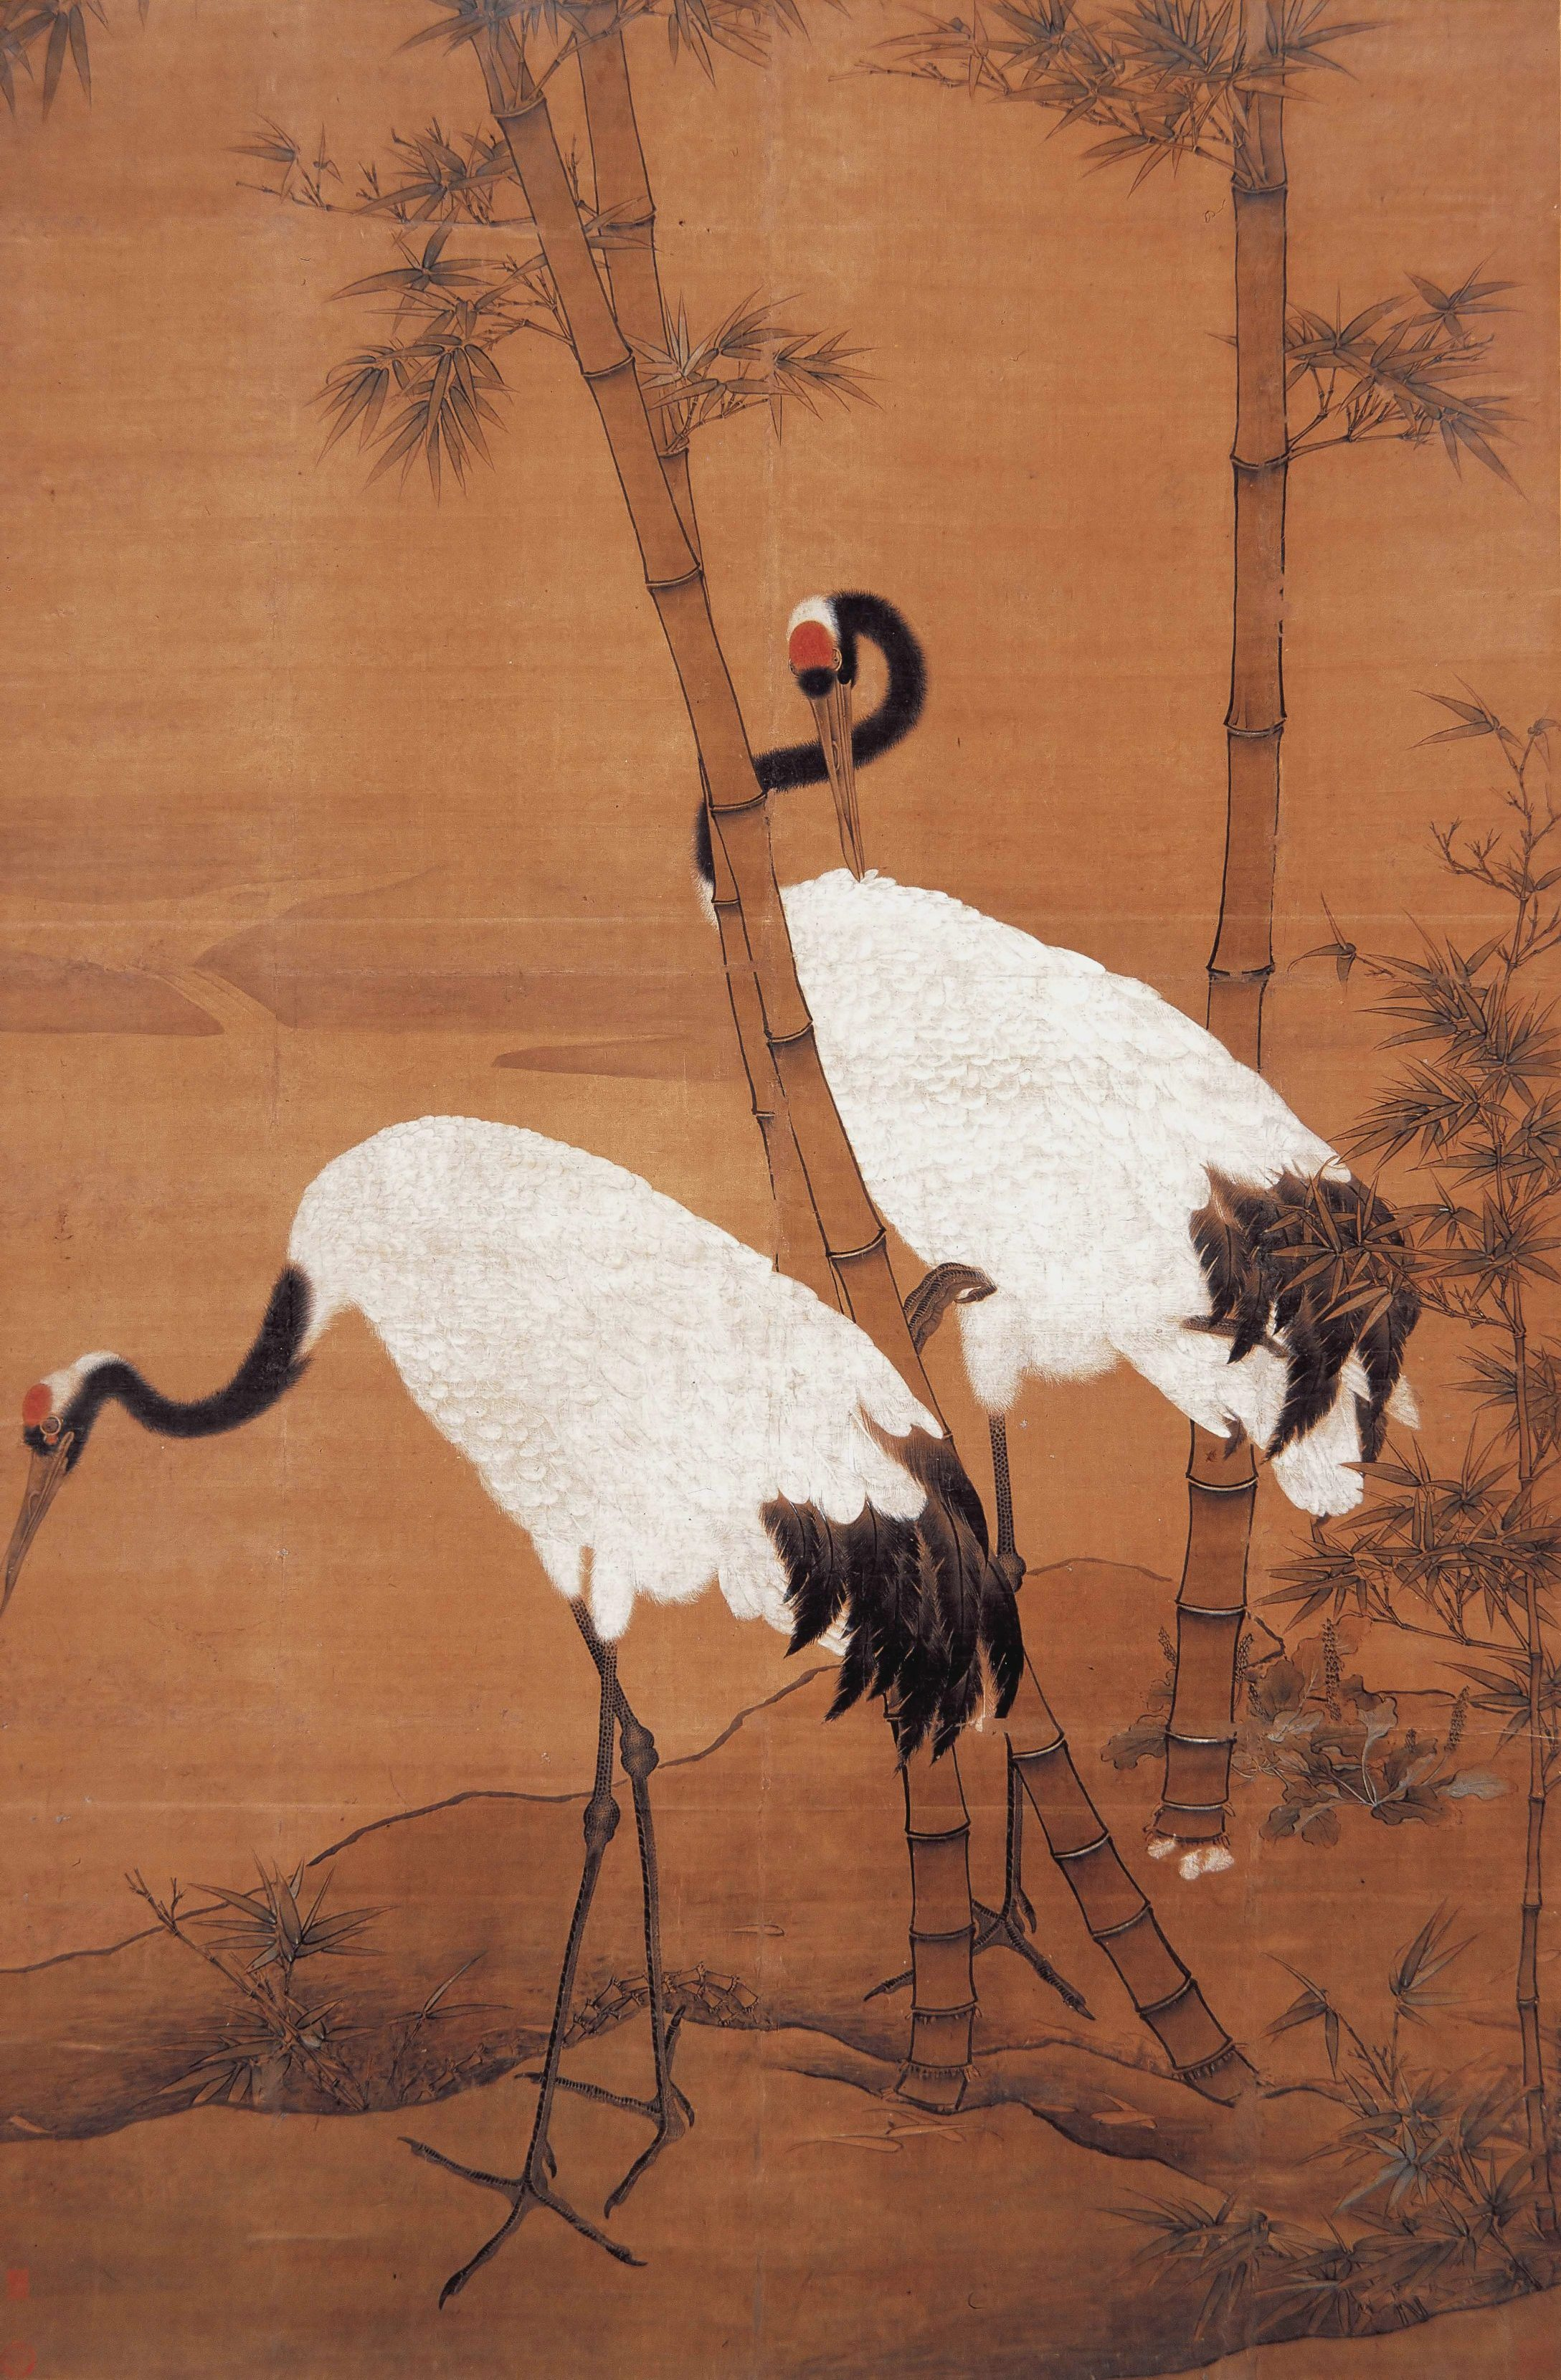 Crane In Chinese Mythology Wikipedia